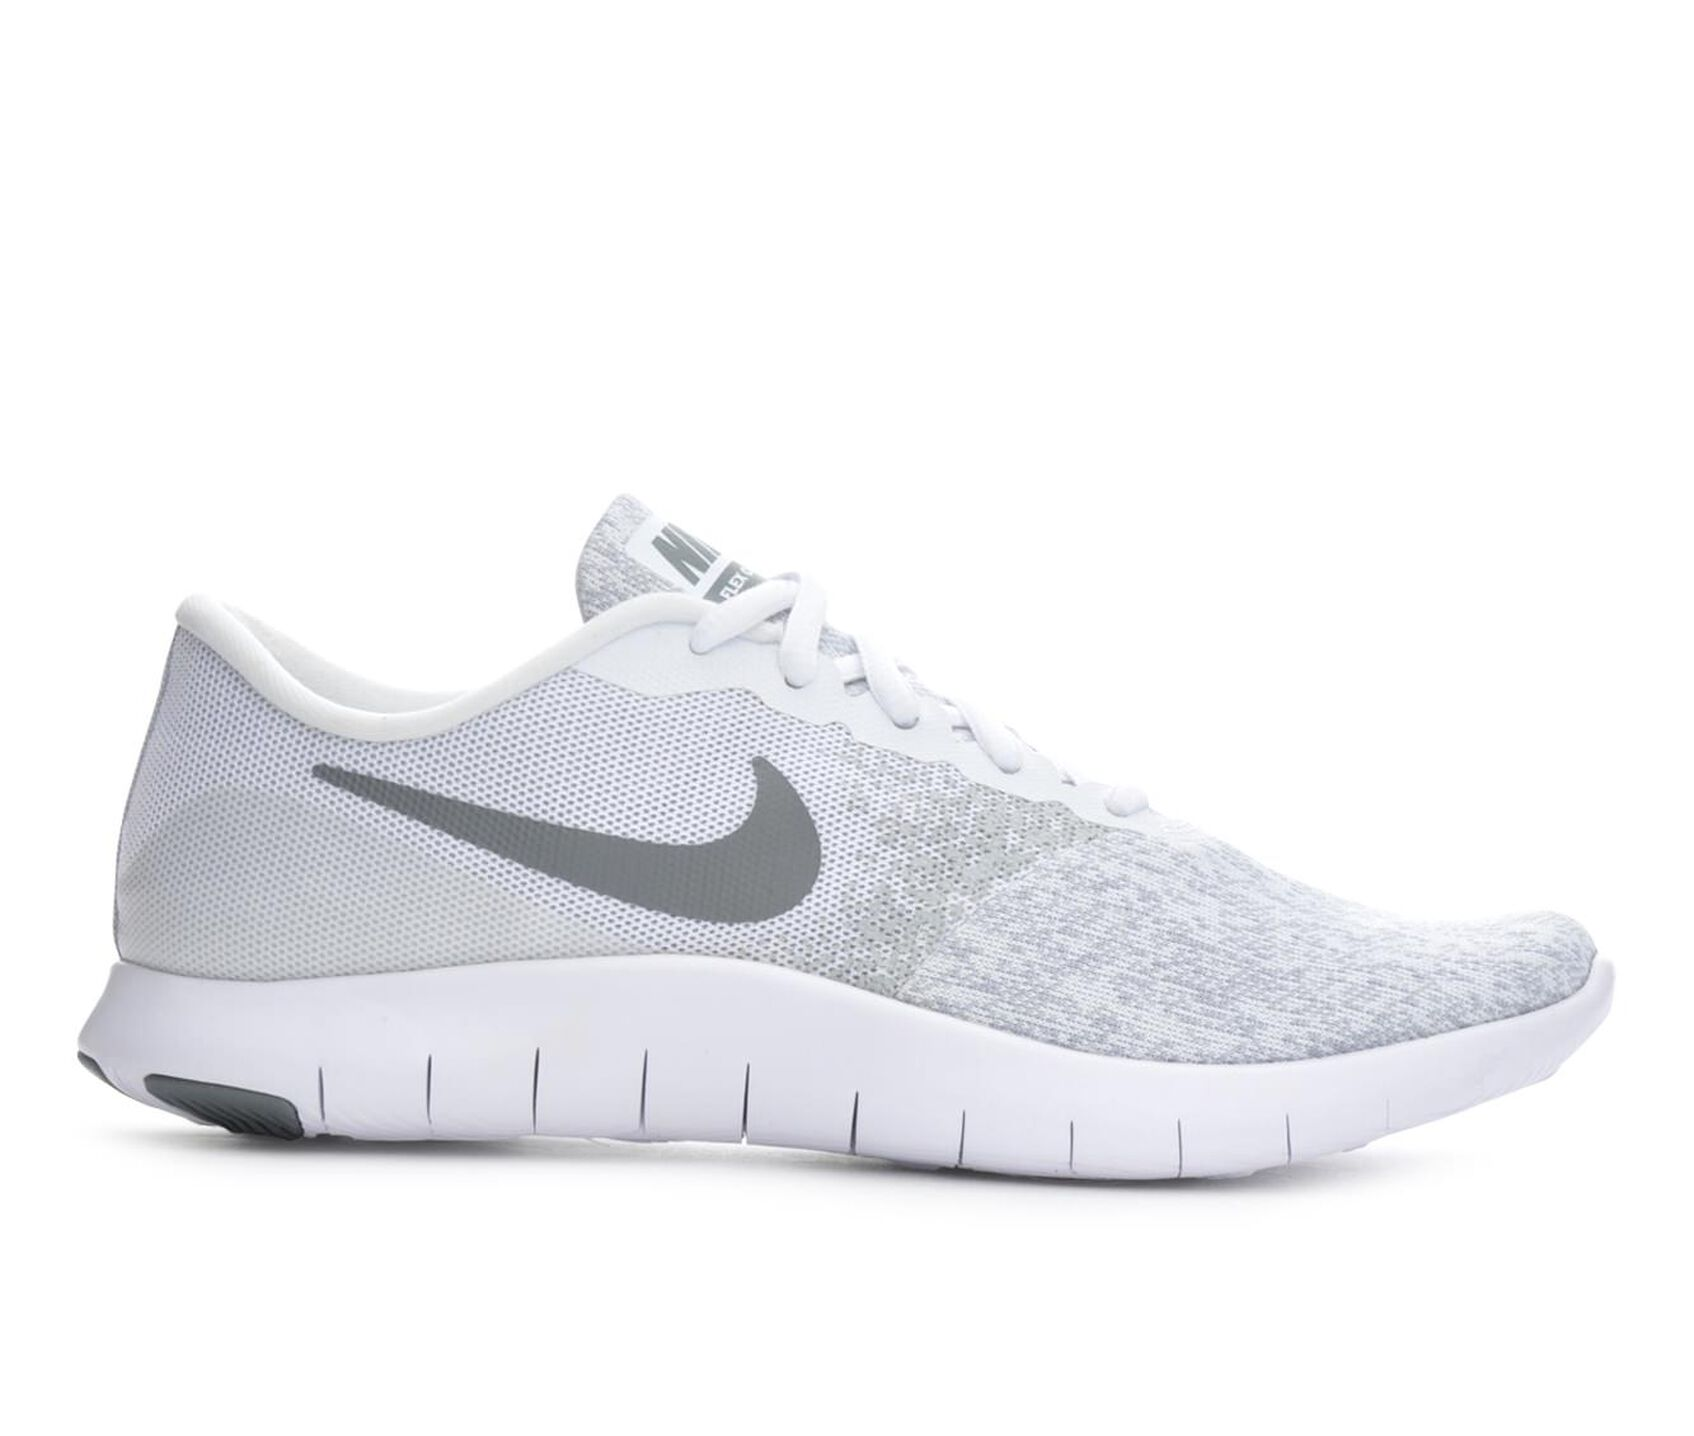 sports shoes 0475d cfade ... womens nike blue flex shoes for women nike kaishi shoe carnival ...